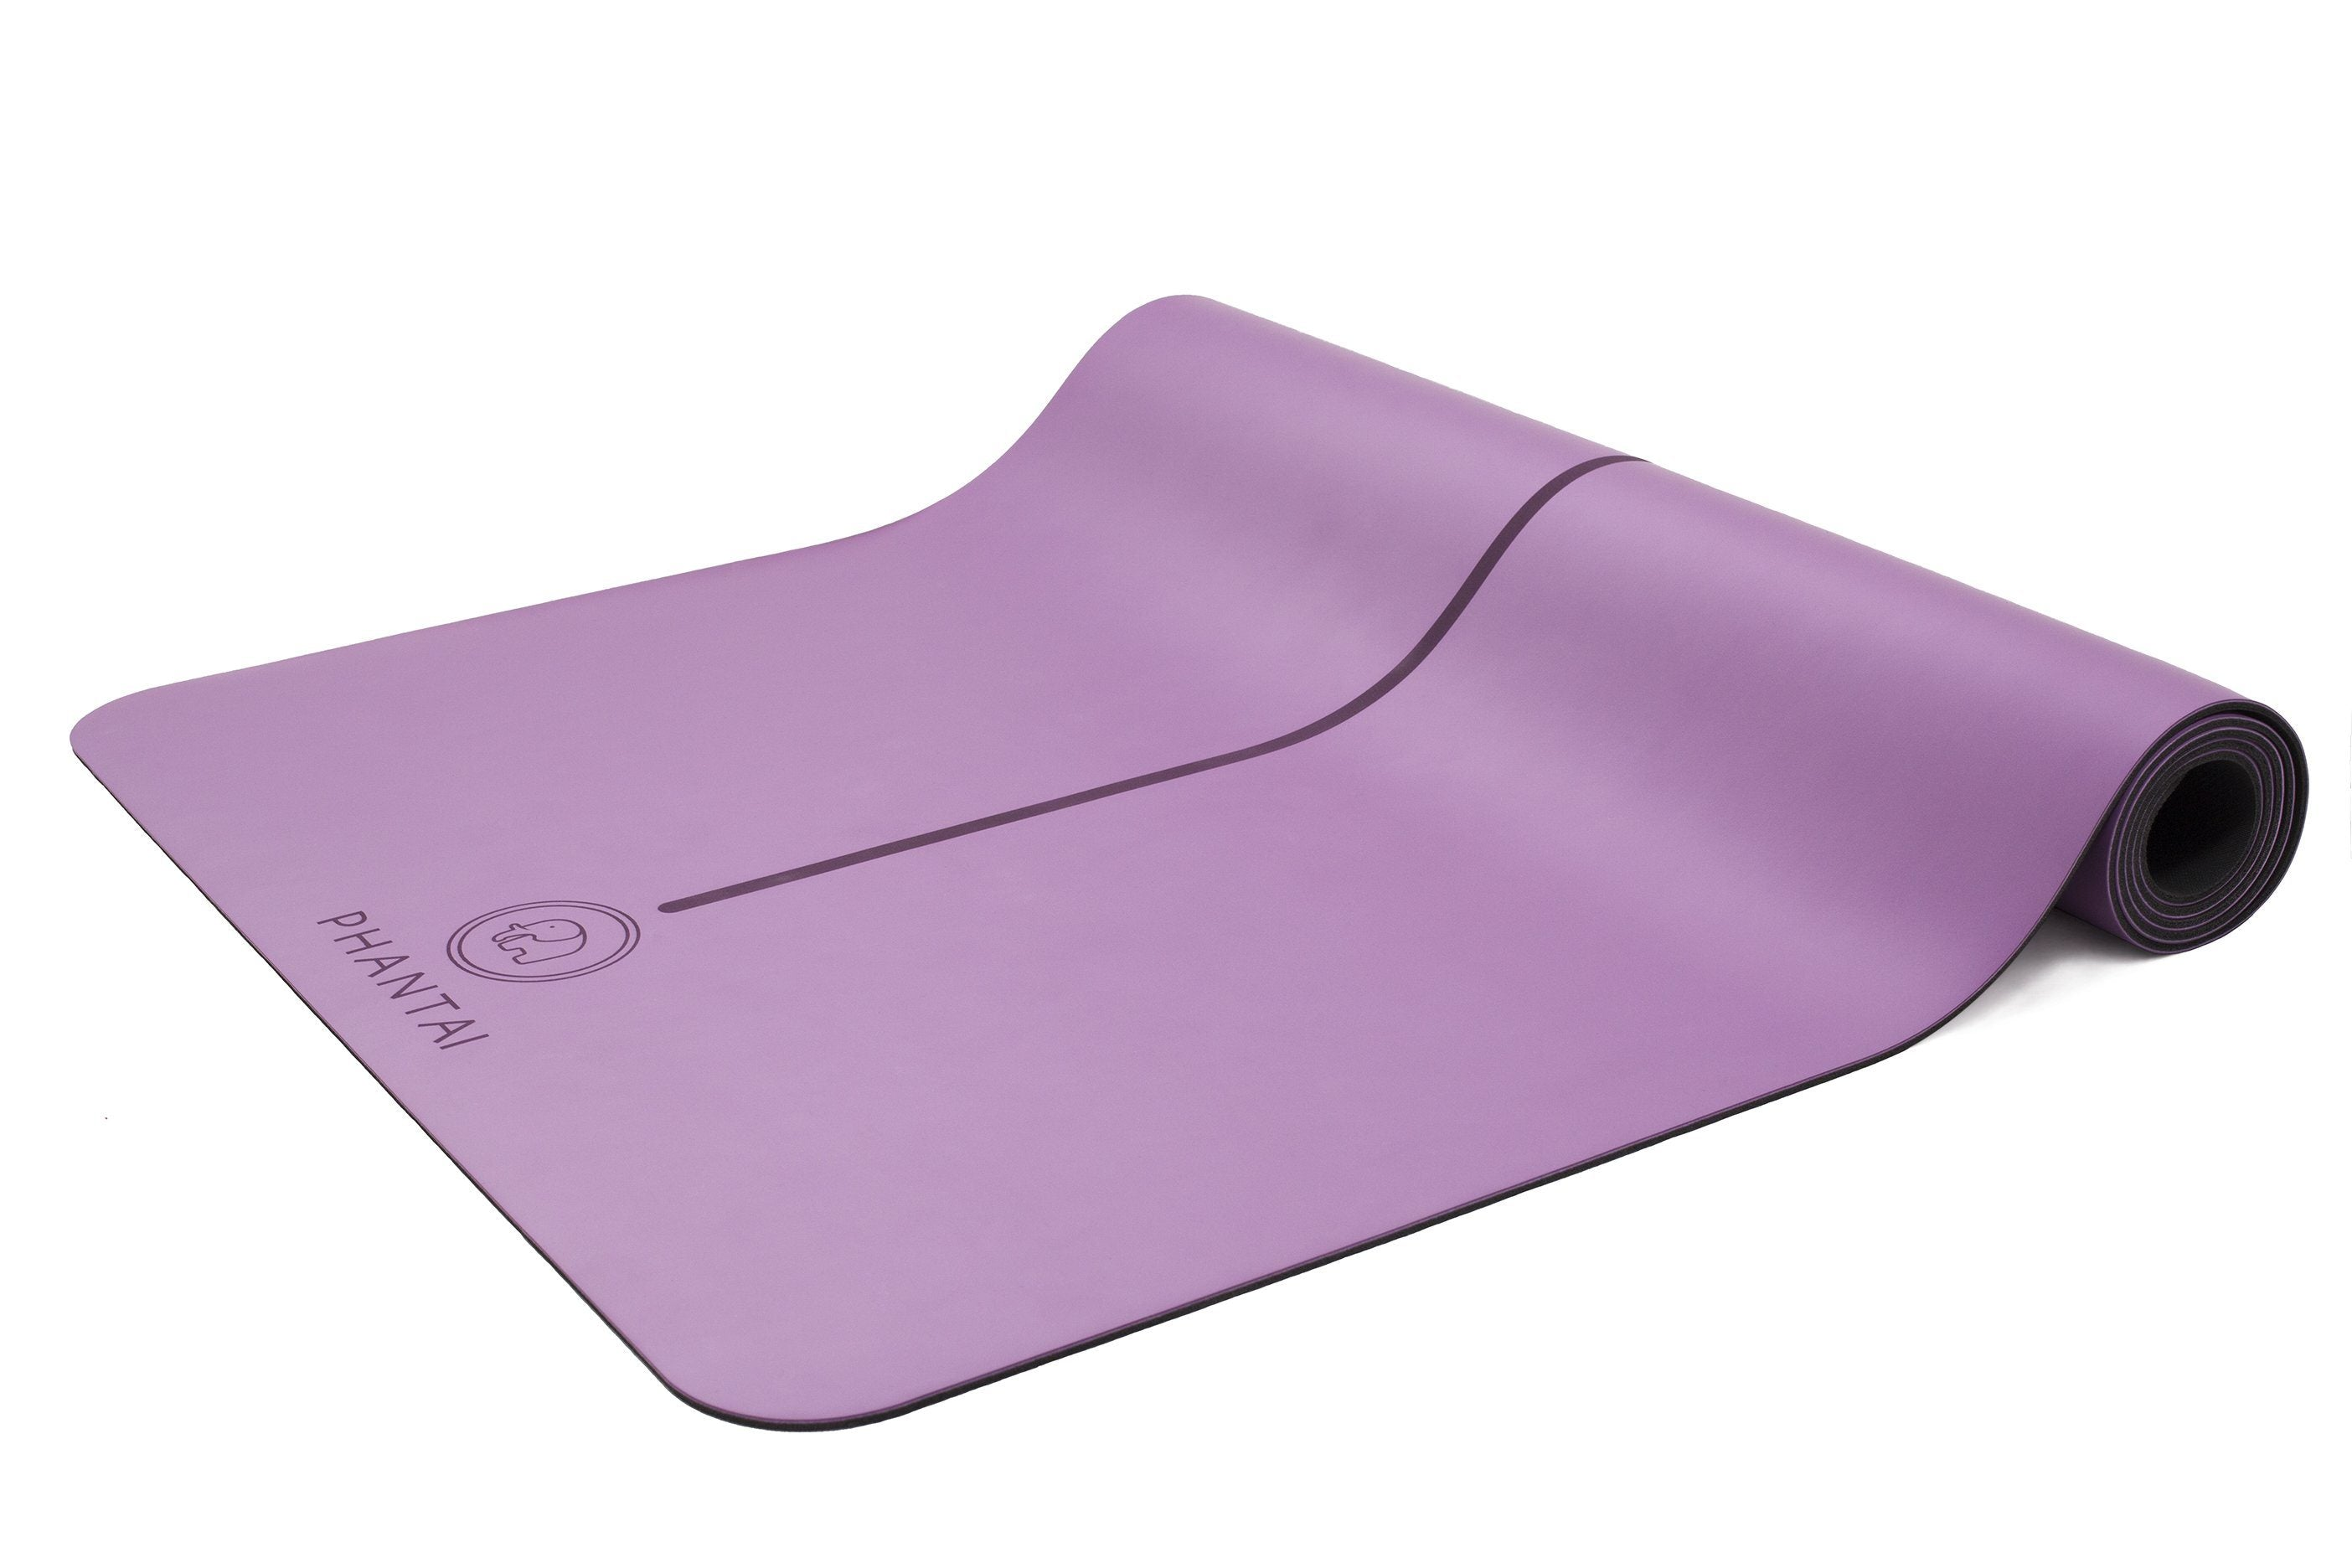 mat good mats x mantra mind body sristicabletv eco com friendly yoga